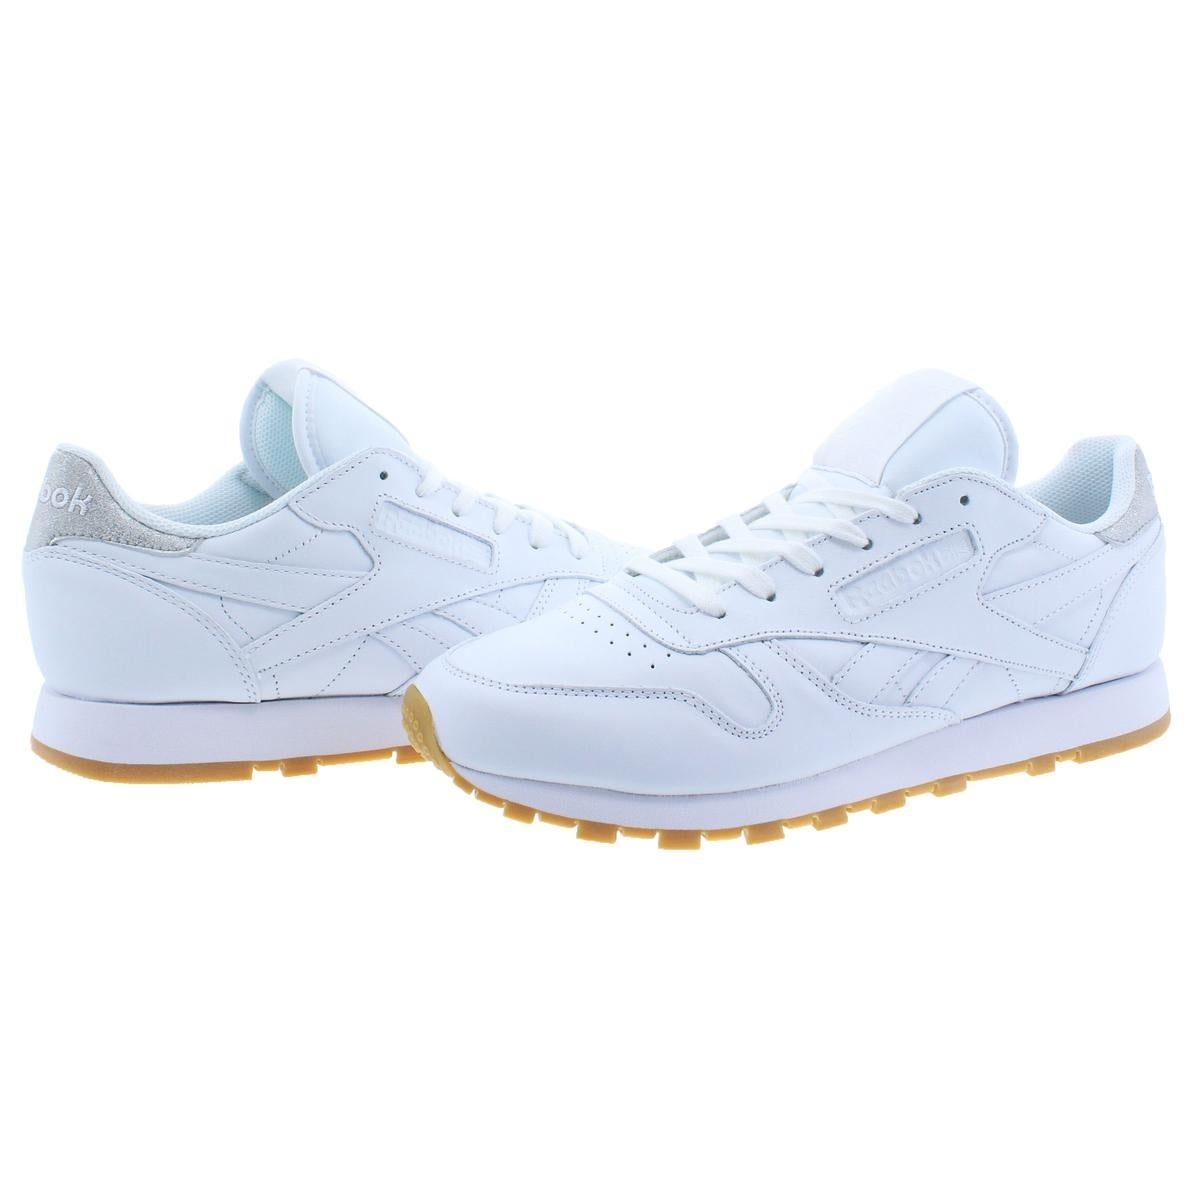 best service 24c79 de907 Reebok Womens Classic Leather Met Diamond Sneakers Retro Low-Top - 10  medium (b,m)